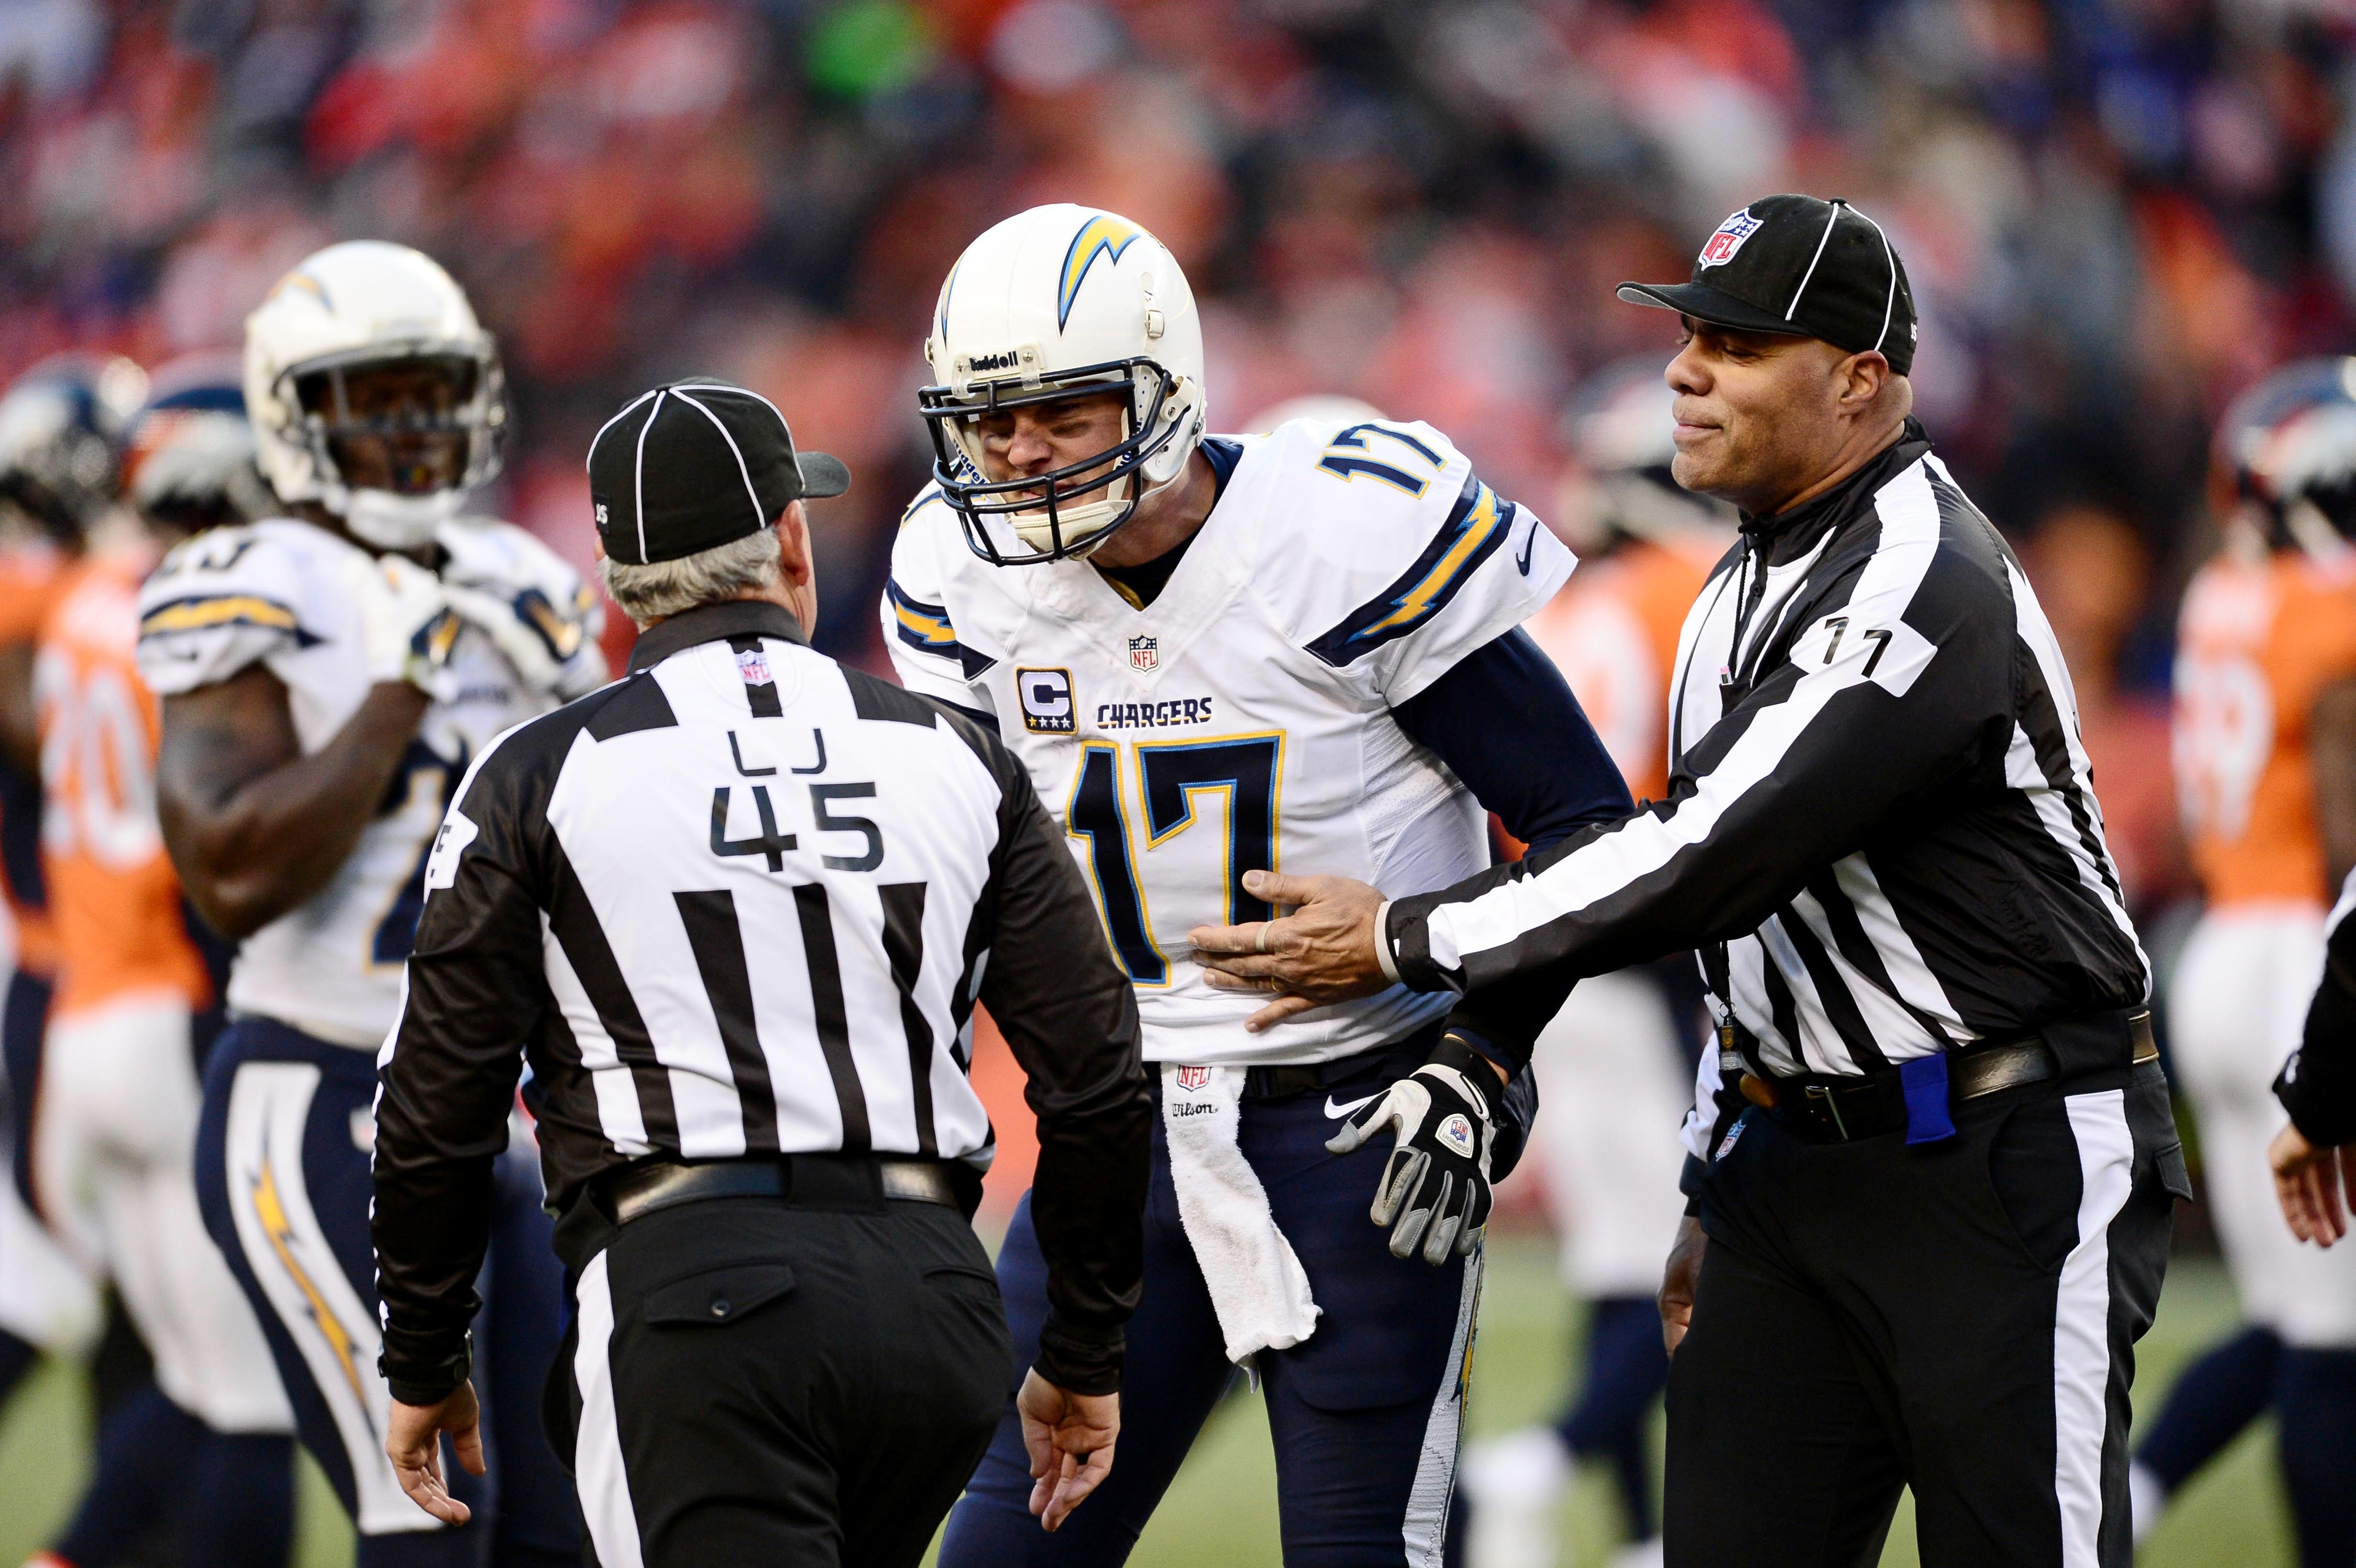 NFL considering extra on-field official during preseason